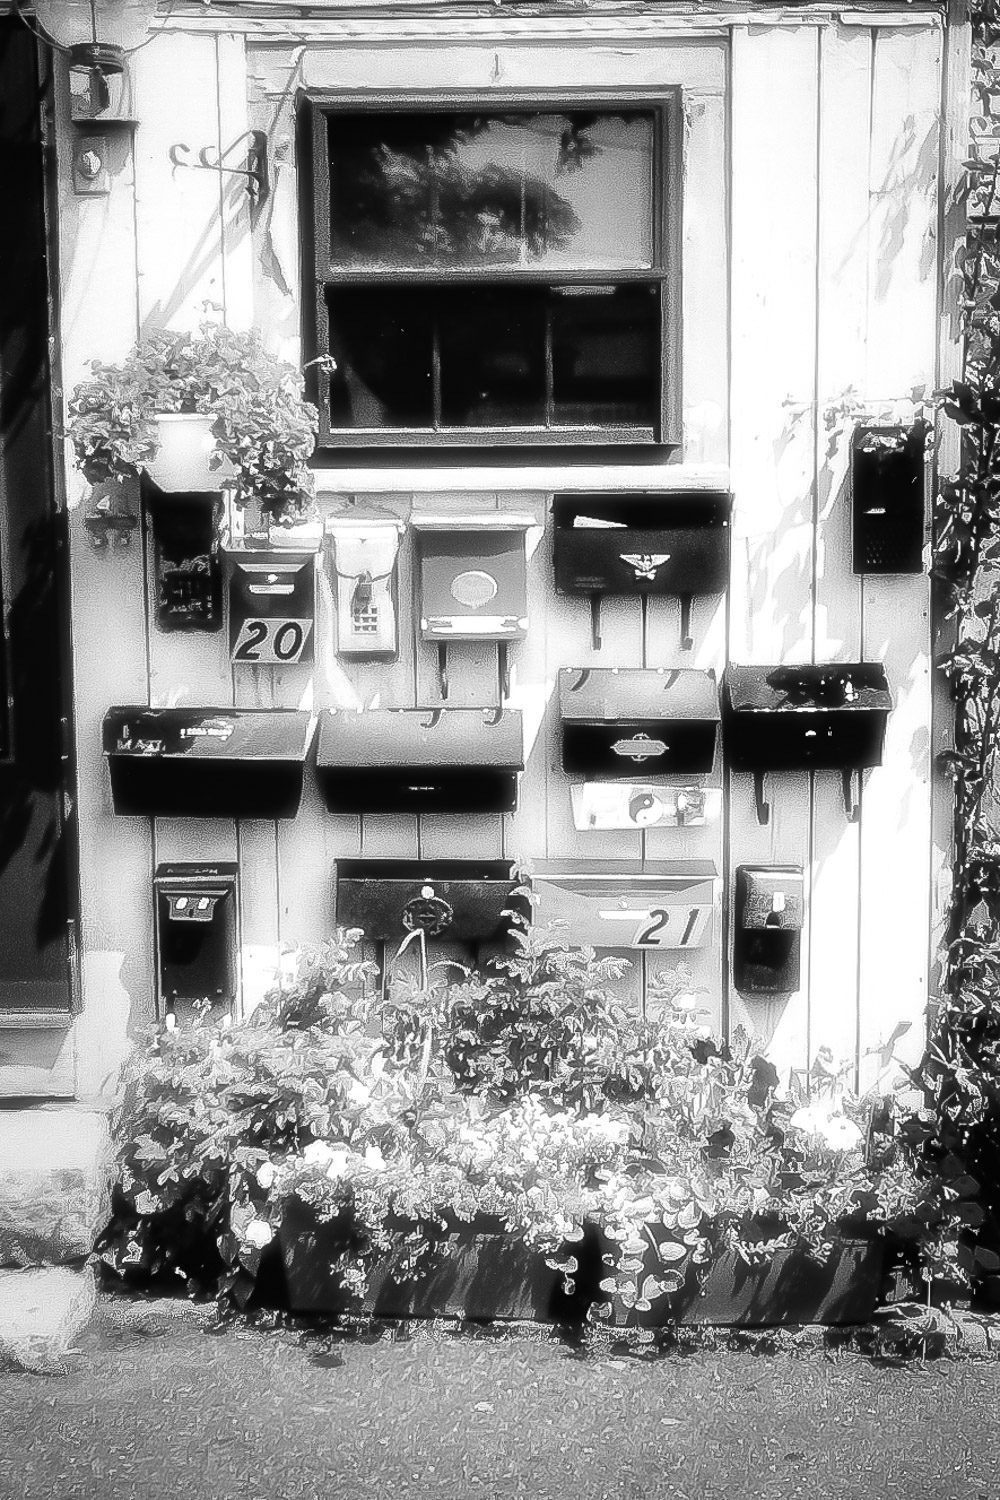 Mailboxes-On-Building-Wall-Rockport-BW.jpg